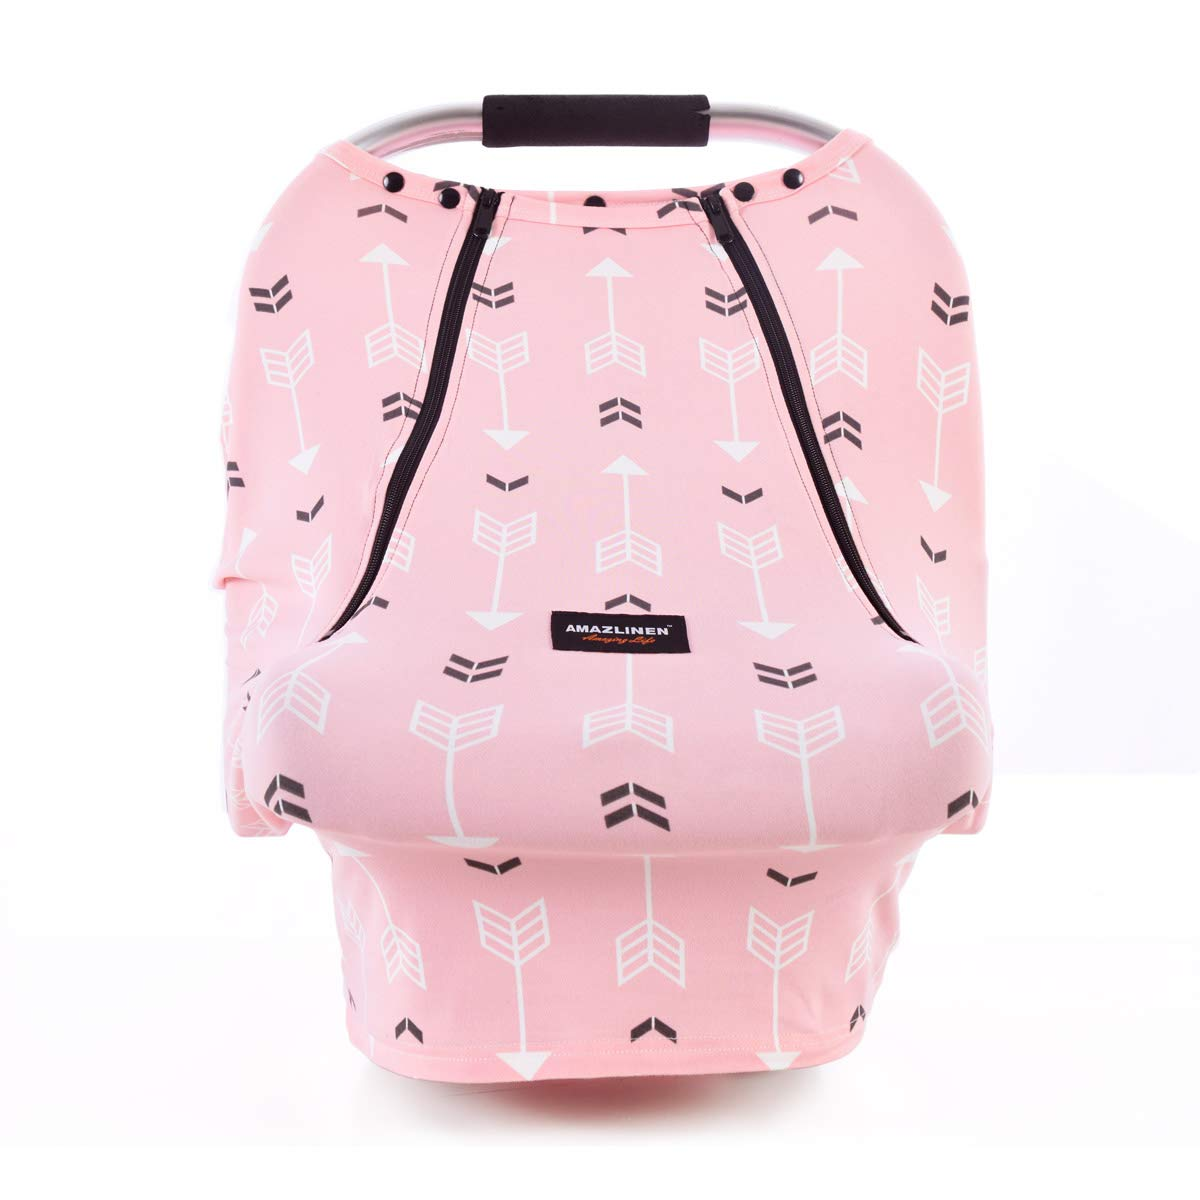 """Baby Car Seat Covers-AMAZLINEN Multifunctional Infant Carseat Canopy for Boys Girls,Stretchy Breathable Adjustable Peep Window Universal Fit Pink""""Baby Arrow"""""""